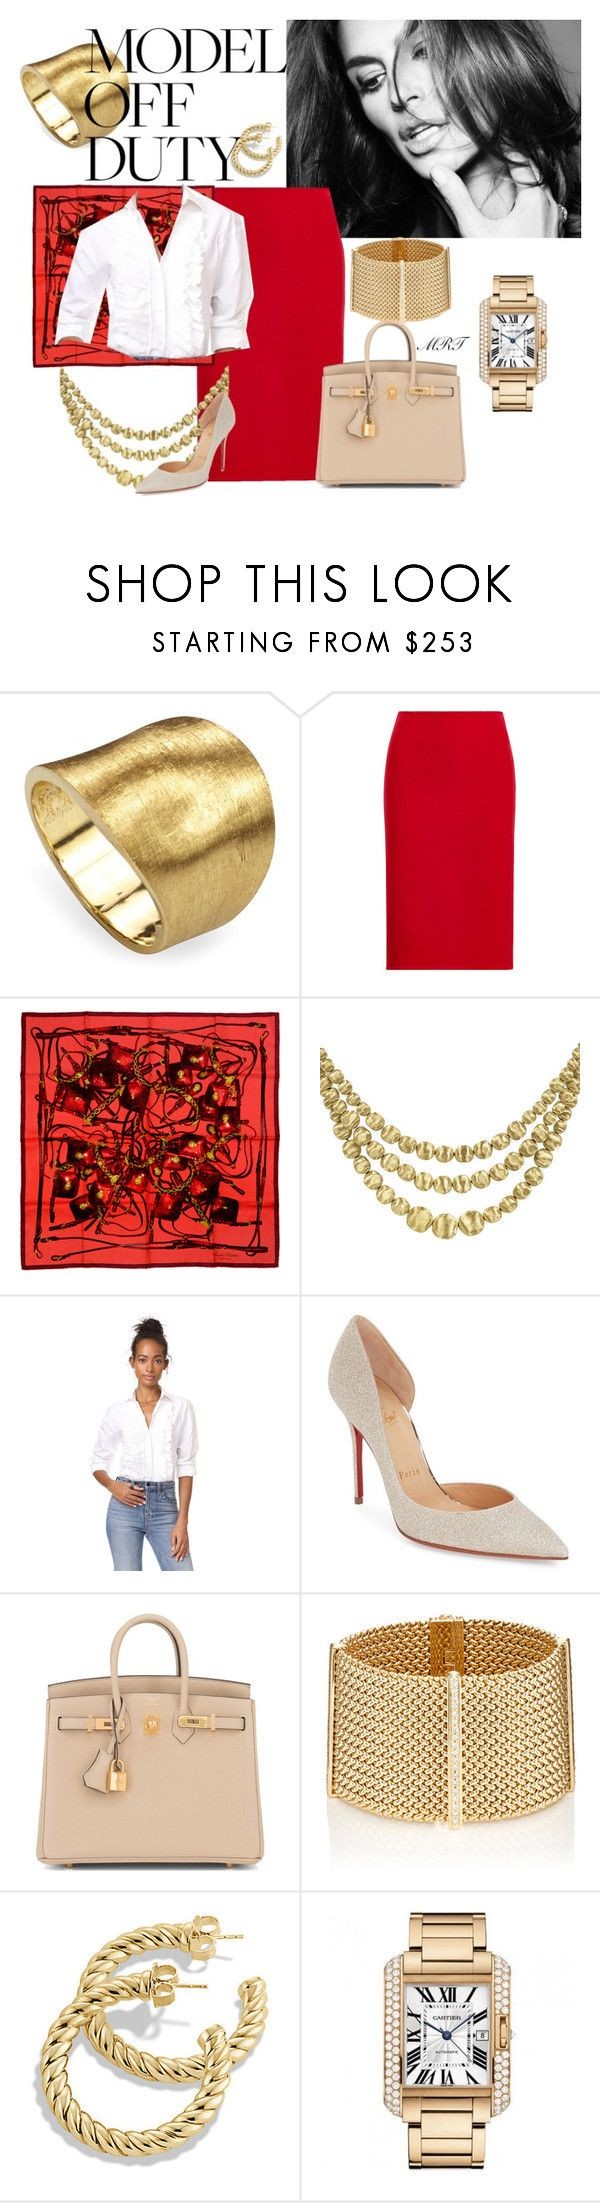 """""""Chic Off Duty"""" by meesh57 on Polyvore featuring Marco Bicego, Hermès, The Seafarer, Christian Louboutin, Sidney Garber and Cartier"""